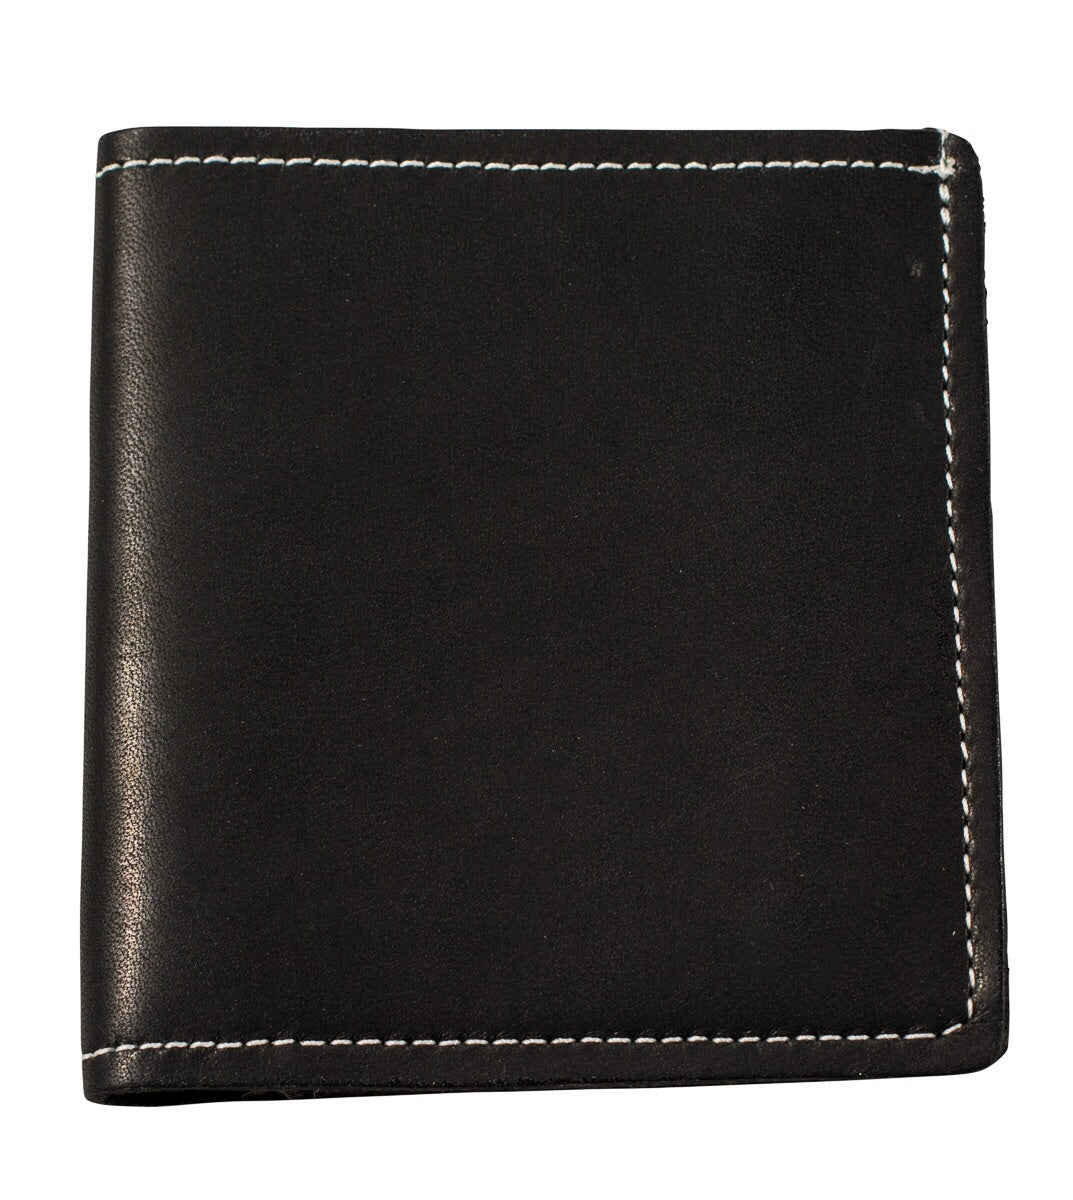 Black matte leather and white stitching bifold wallet